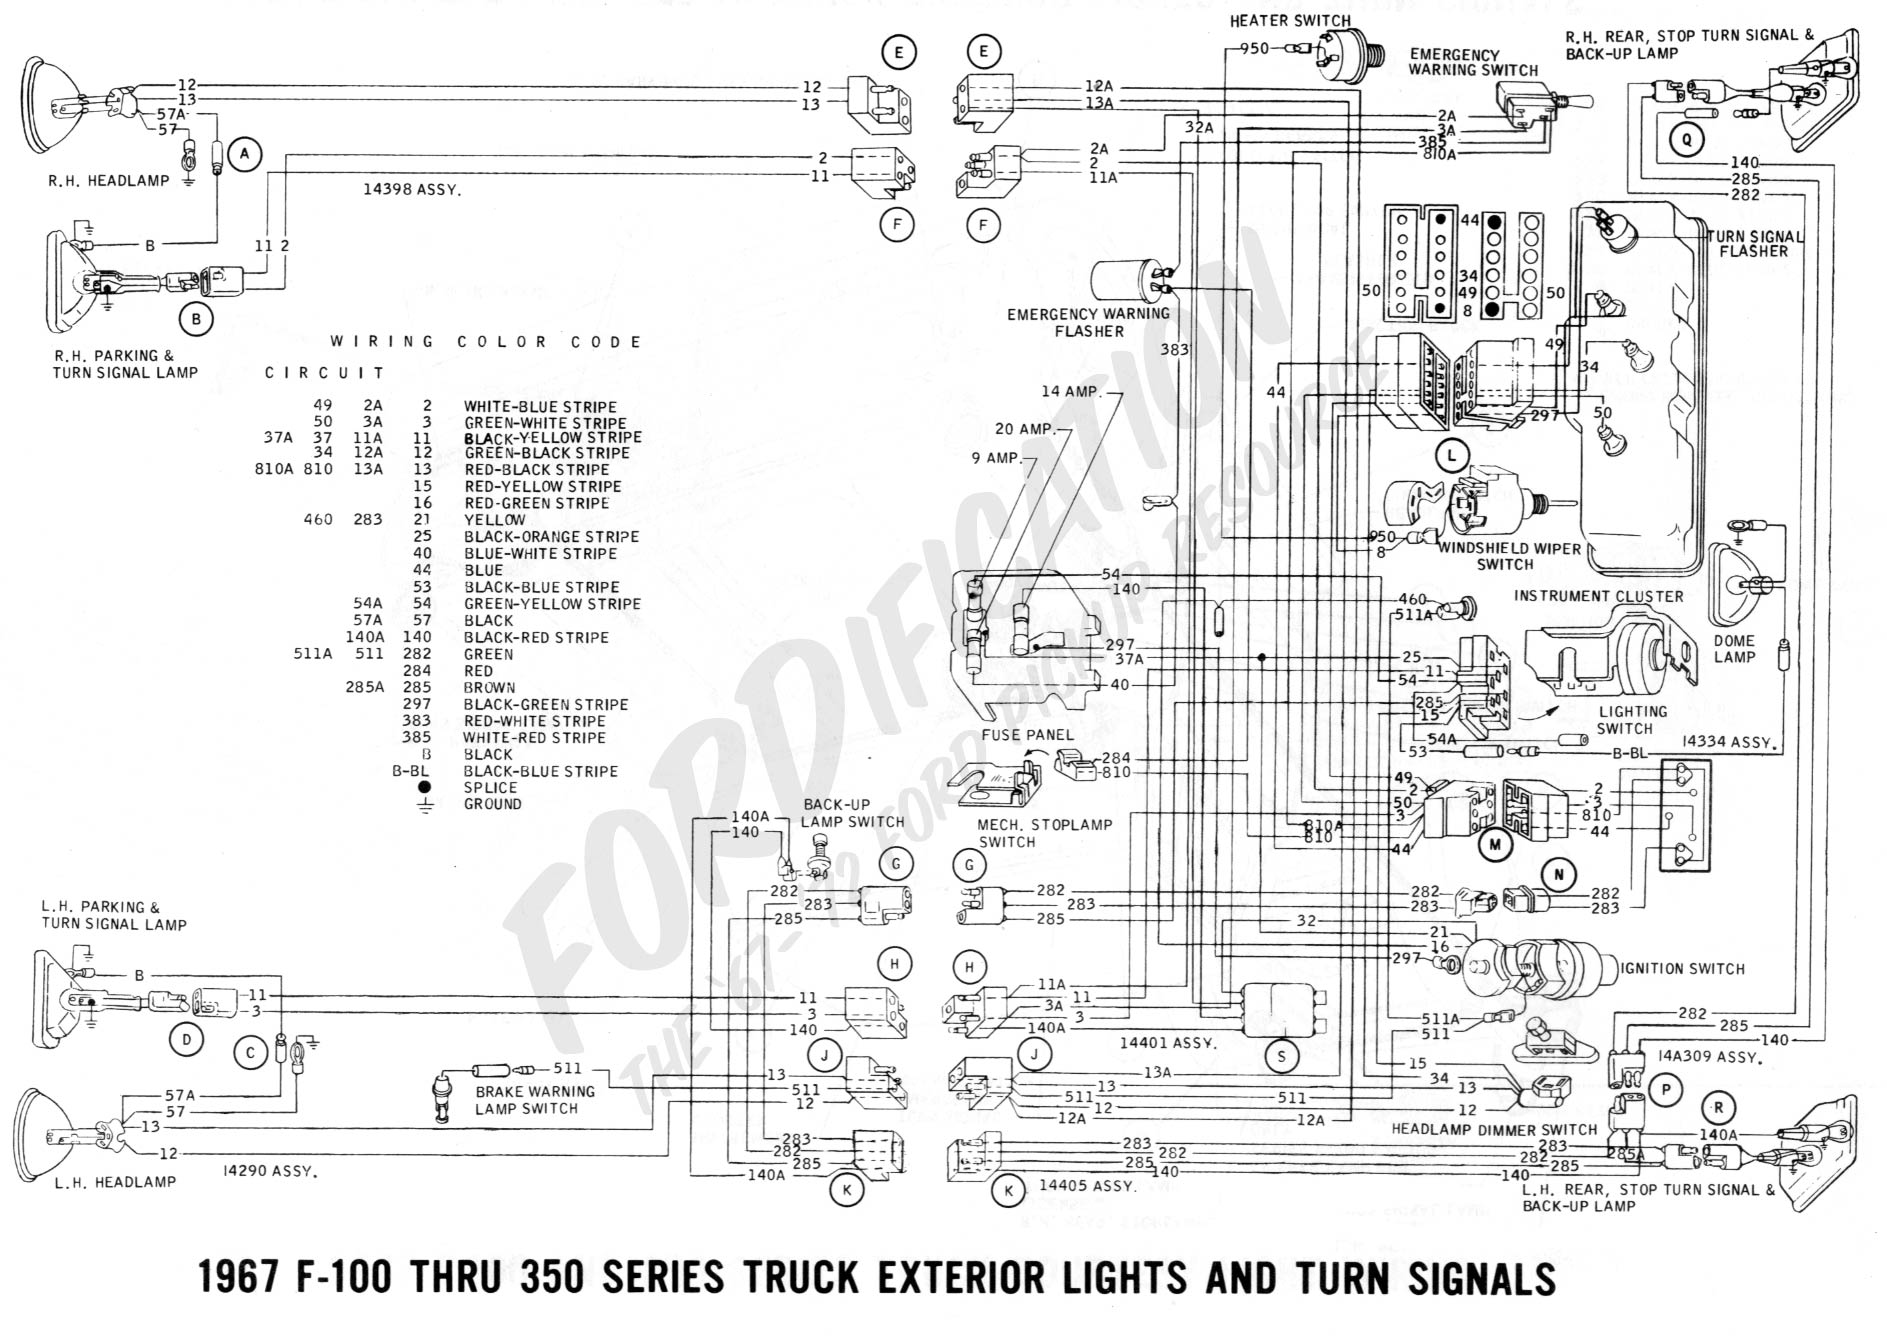 56 Ford Headlight Switch Wiring Diagram Worksheet And Gm Ignition 1993 1954 Schematics Diagrams U2022 Rh Parntesis Co 1956 F250